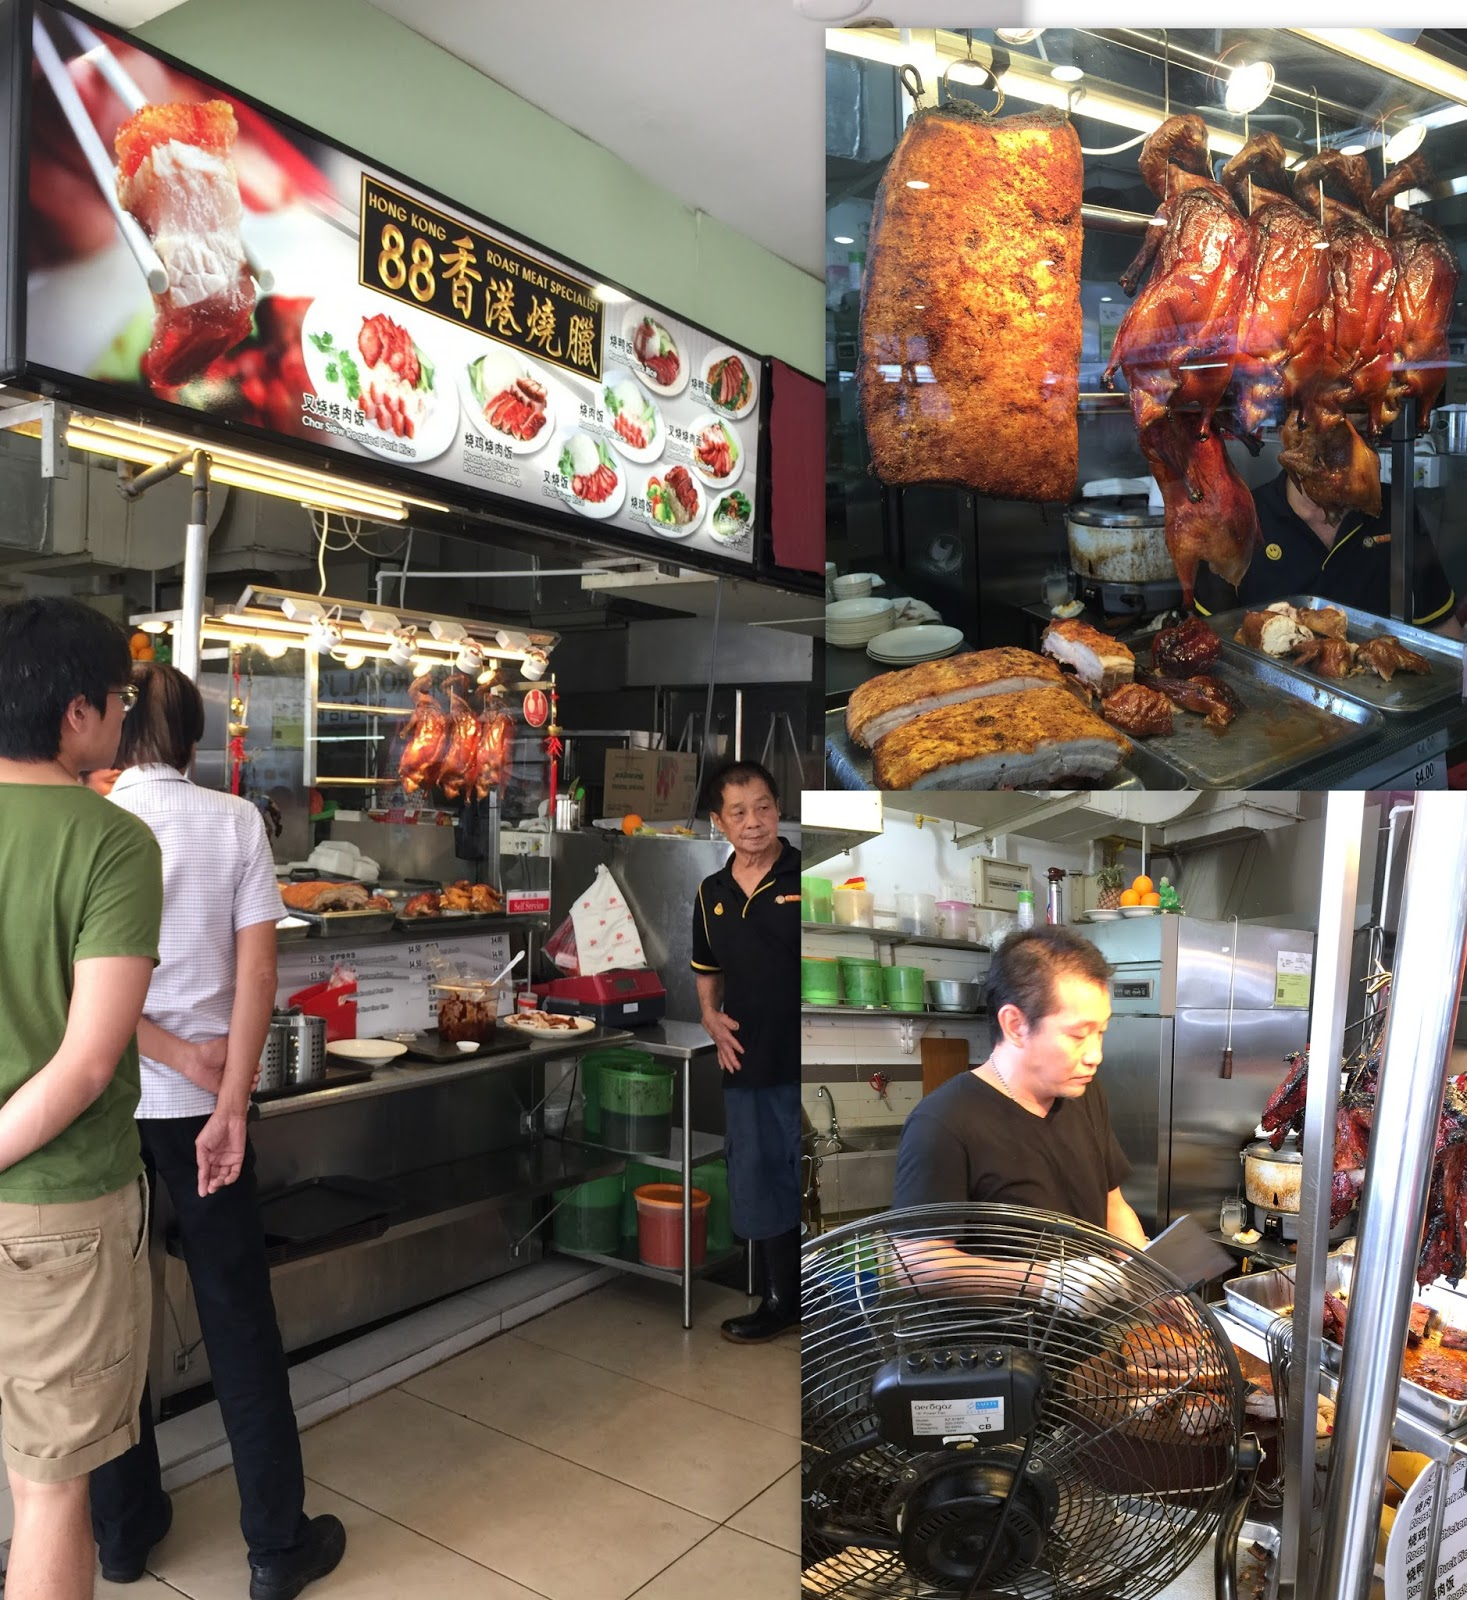 Singapore Japan Food Blog Dairy and Cream Hong Kong 88 Roast – Meat Specialist